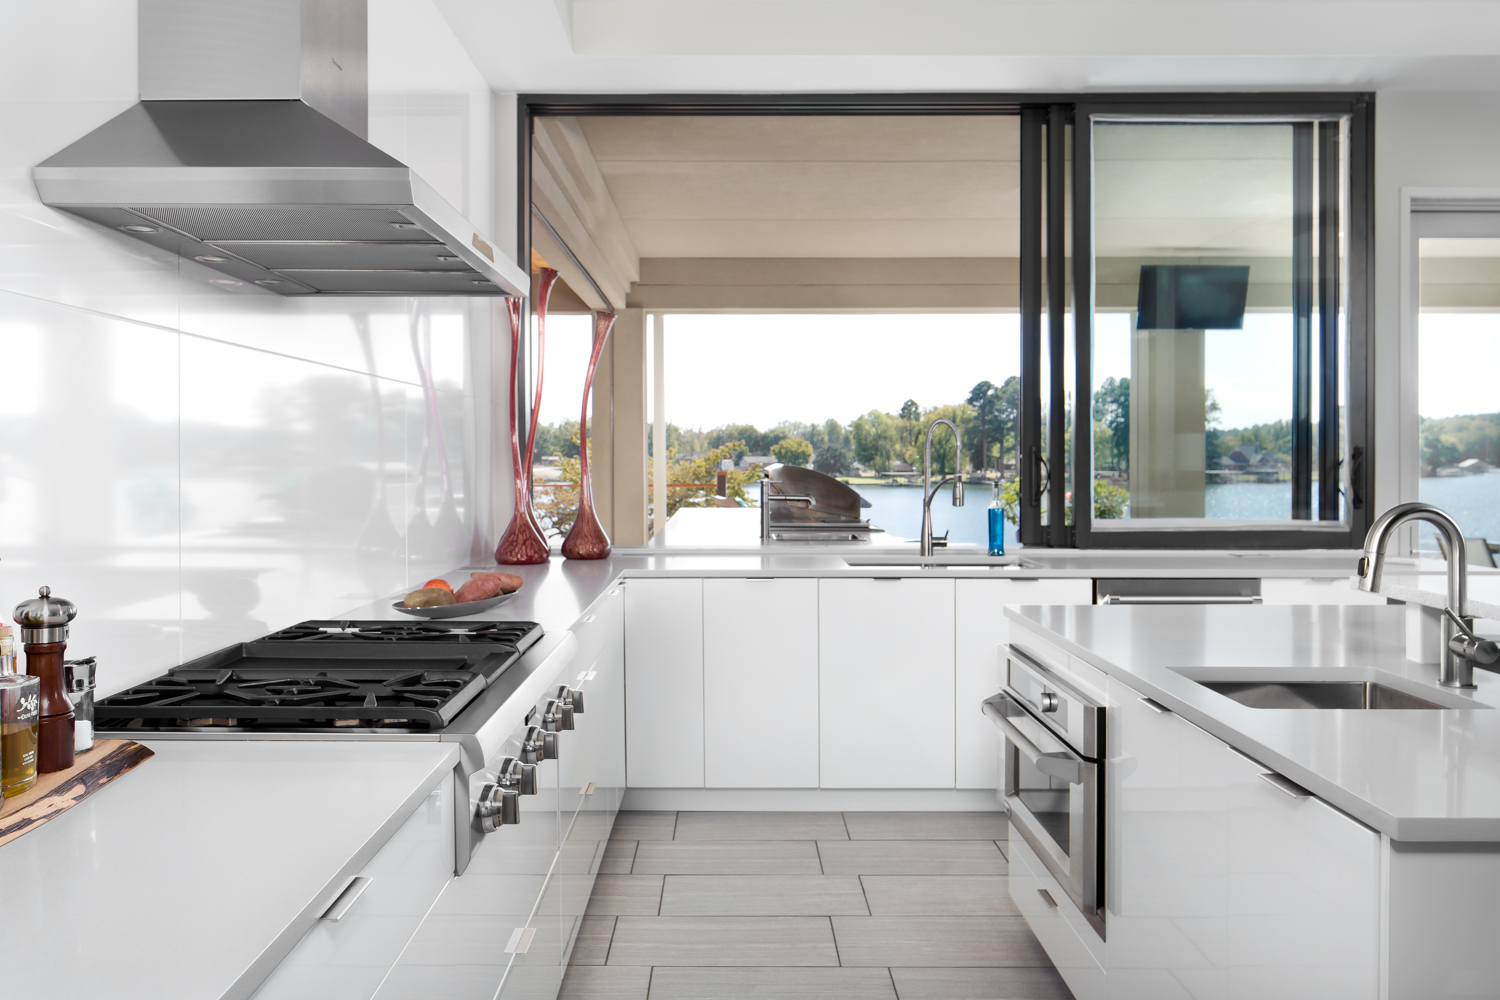 Details and materials shine in an indoor/outdoor kitchen design